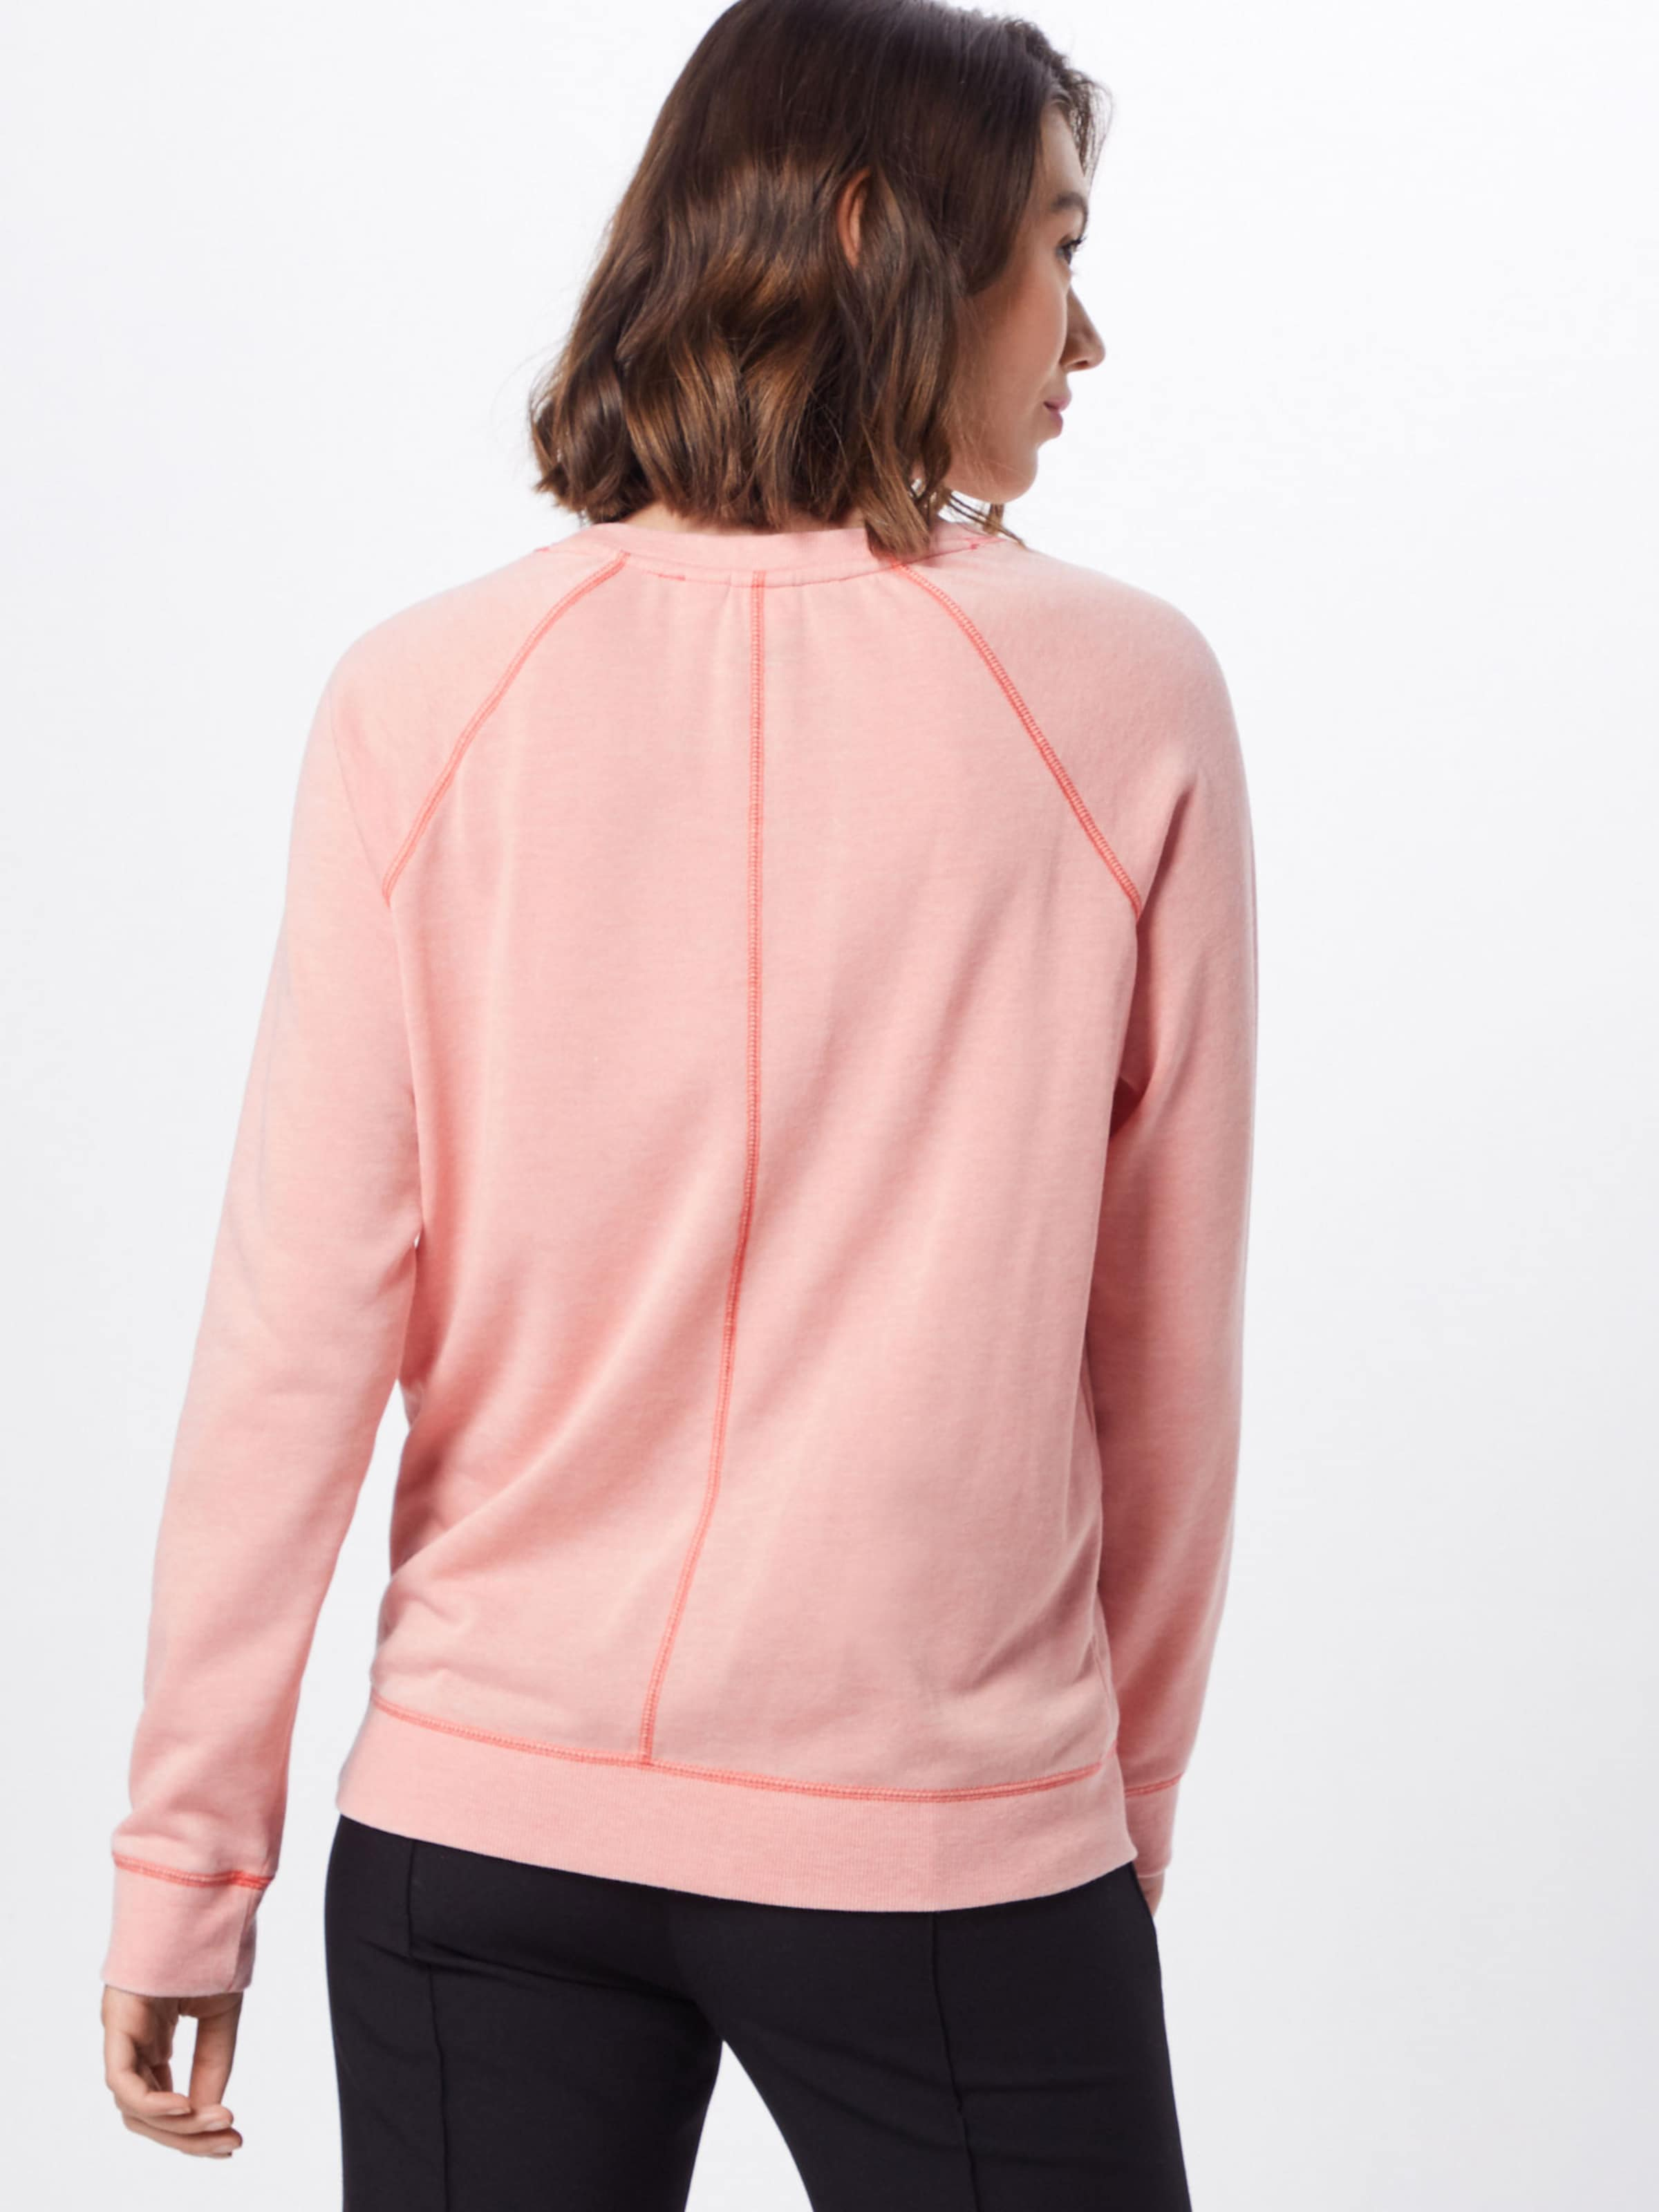 Rose 'wishing shirt Roxy Away' En Sweat 7vIbYf6gym